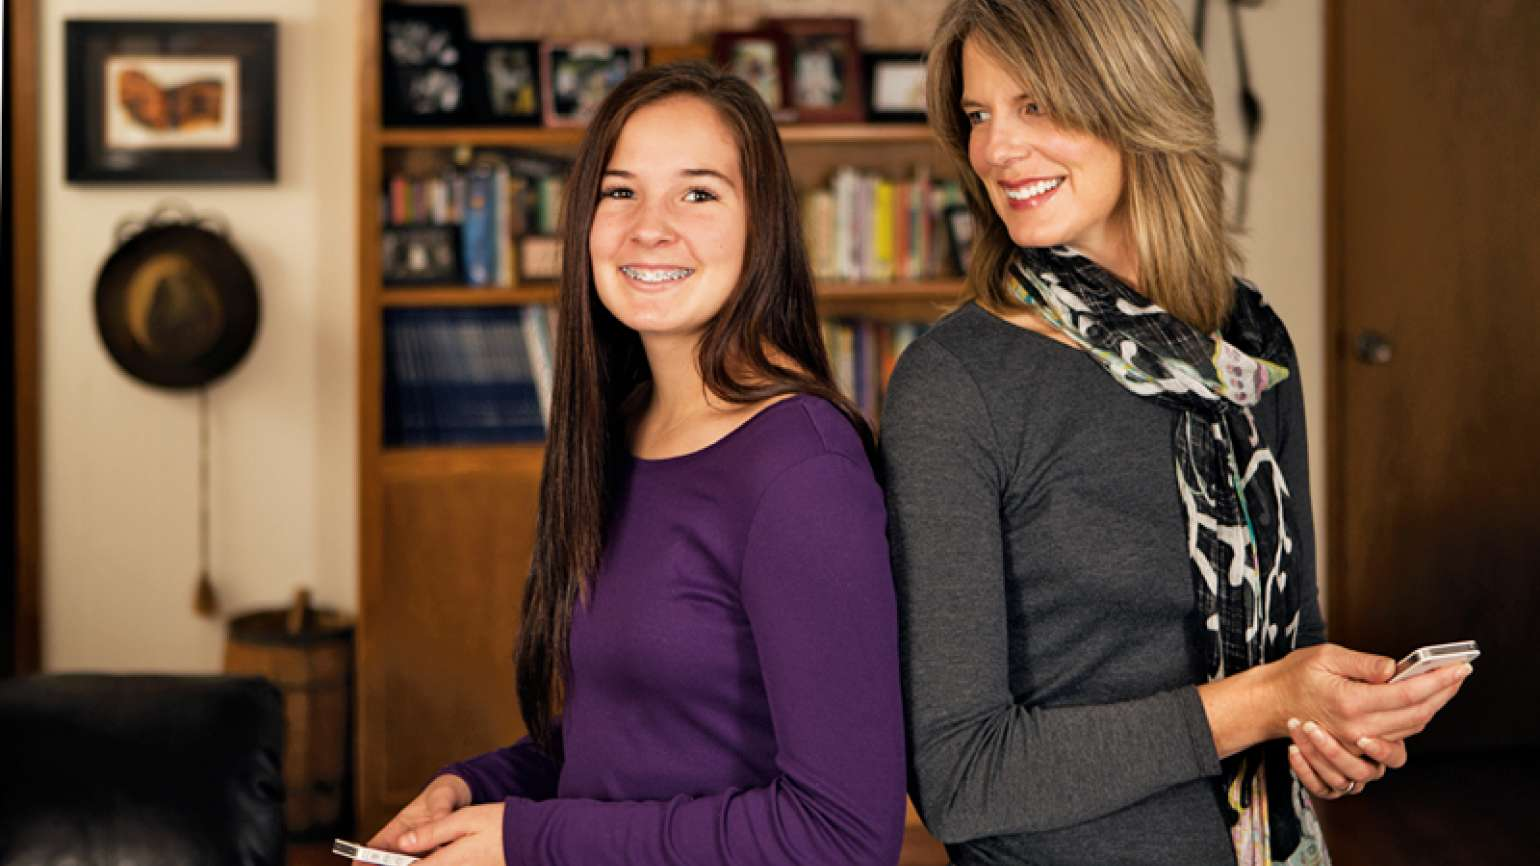 Catherine Madera and her daughter, Haley